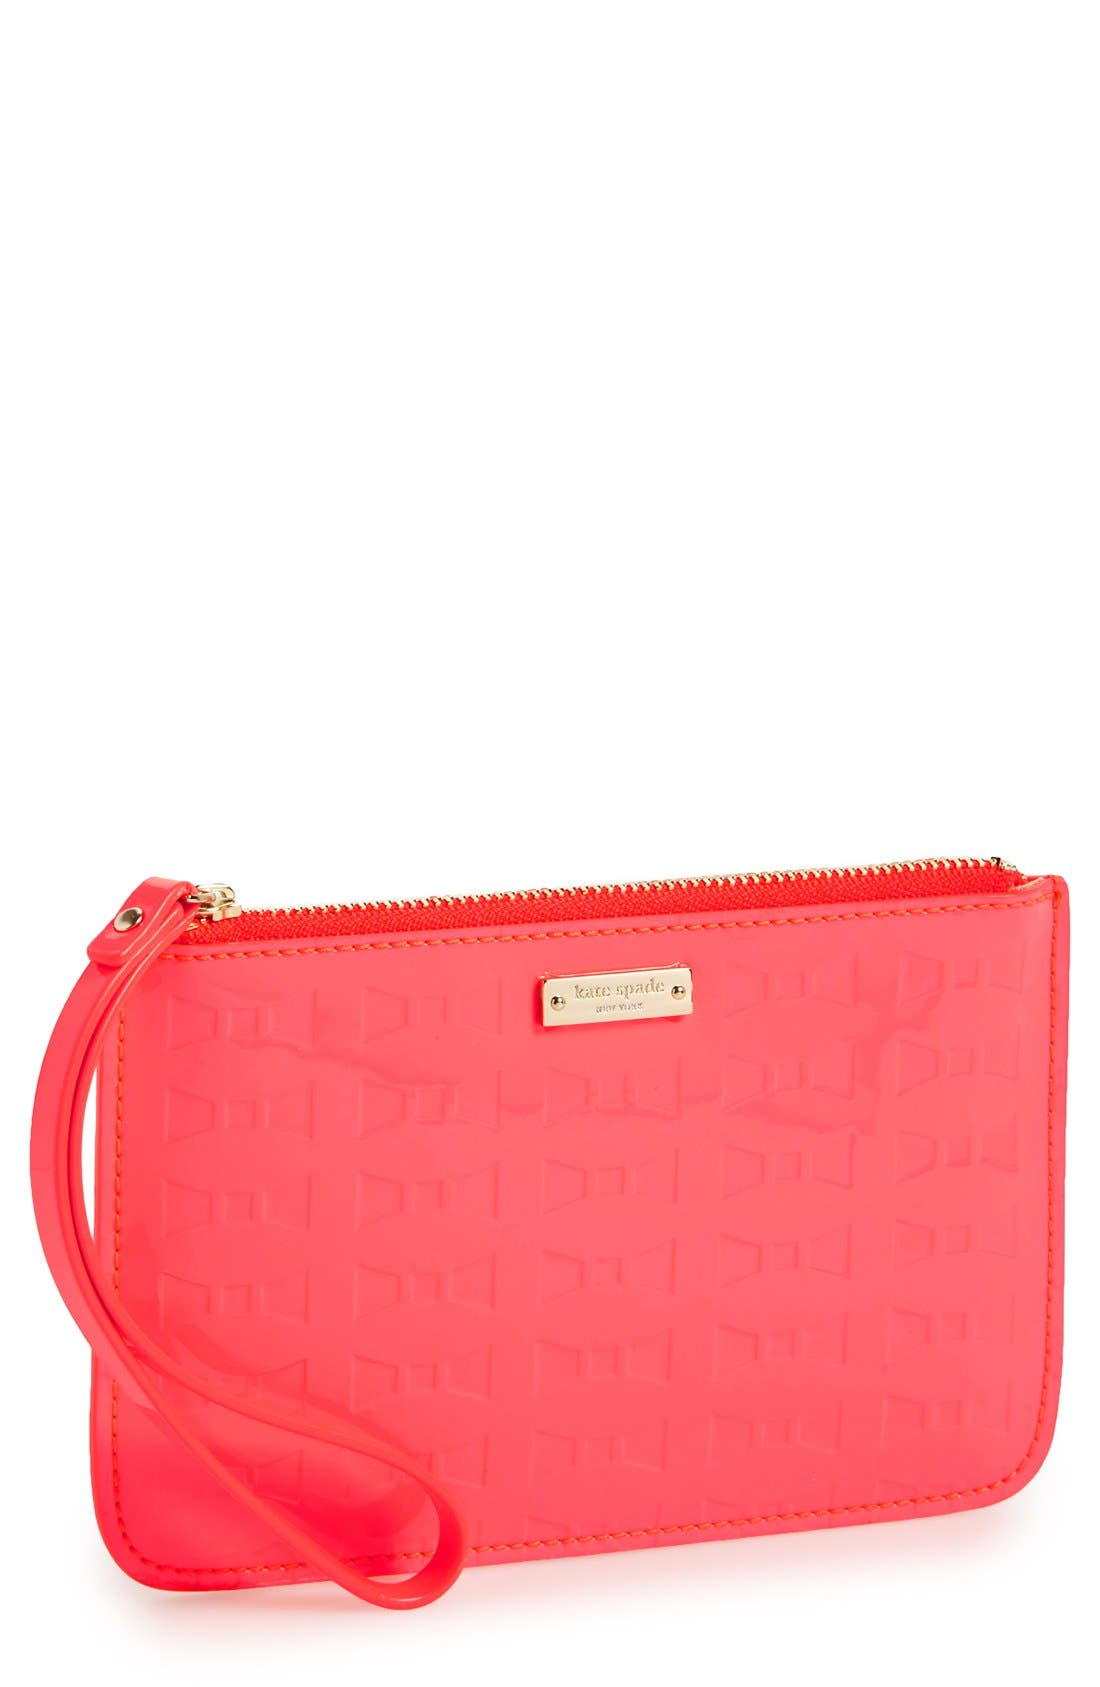 Main Image - kate spade new york 'fancy that - bee' wristlet